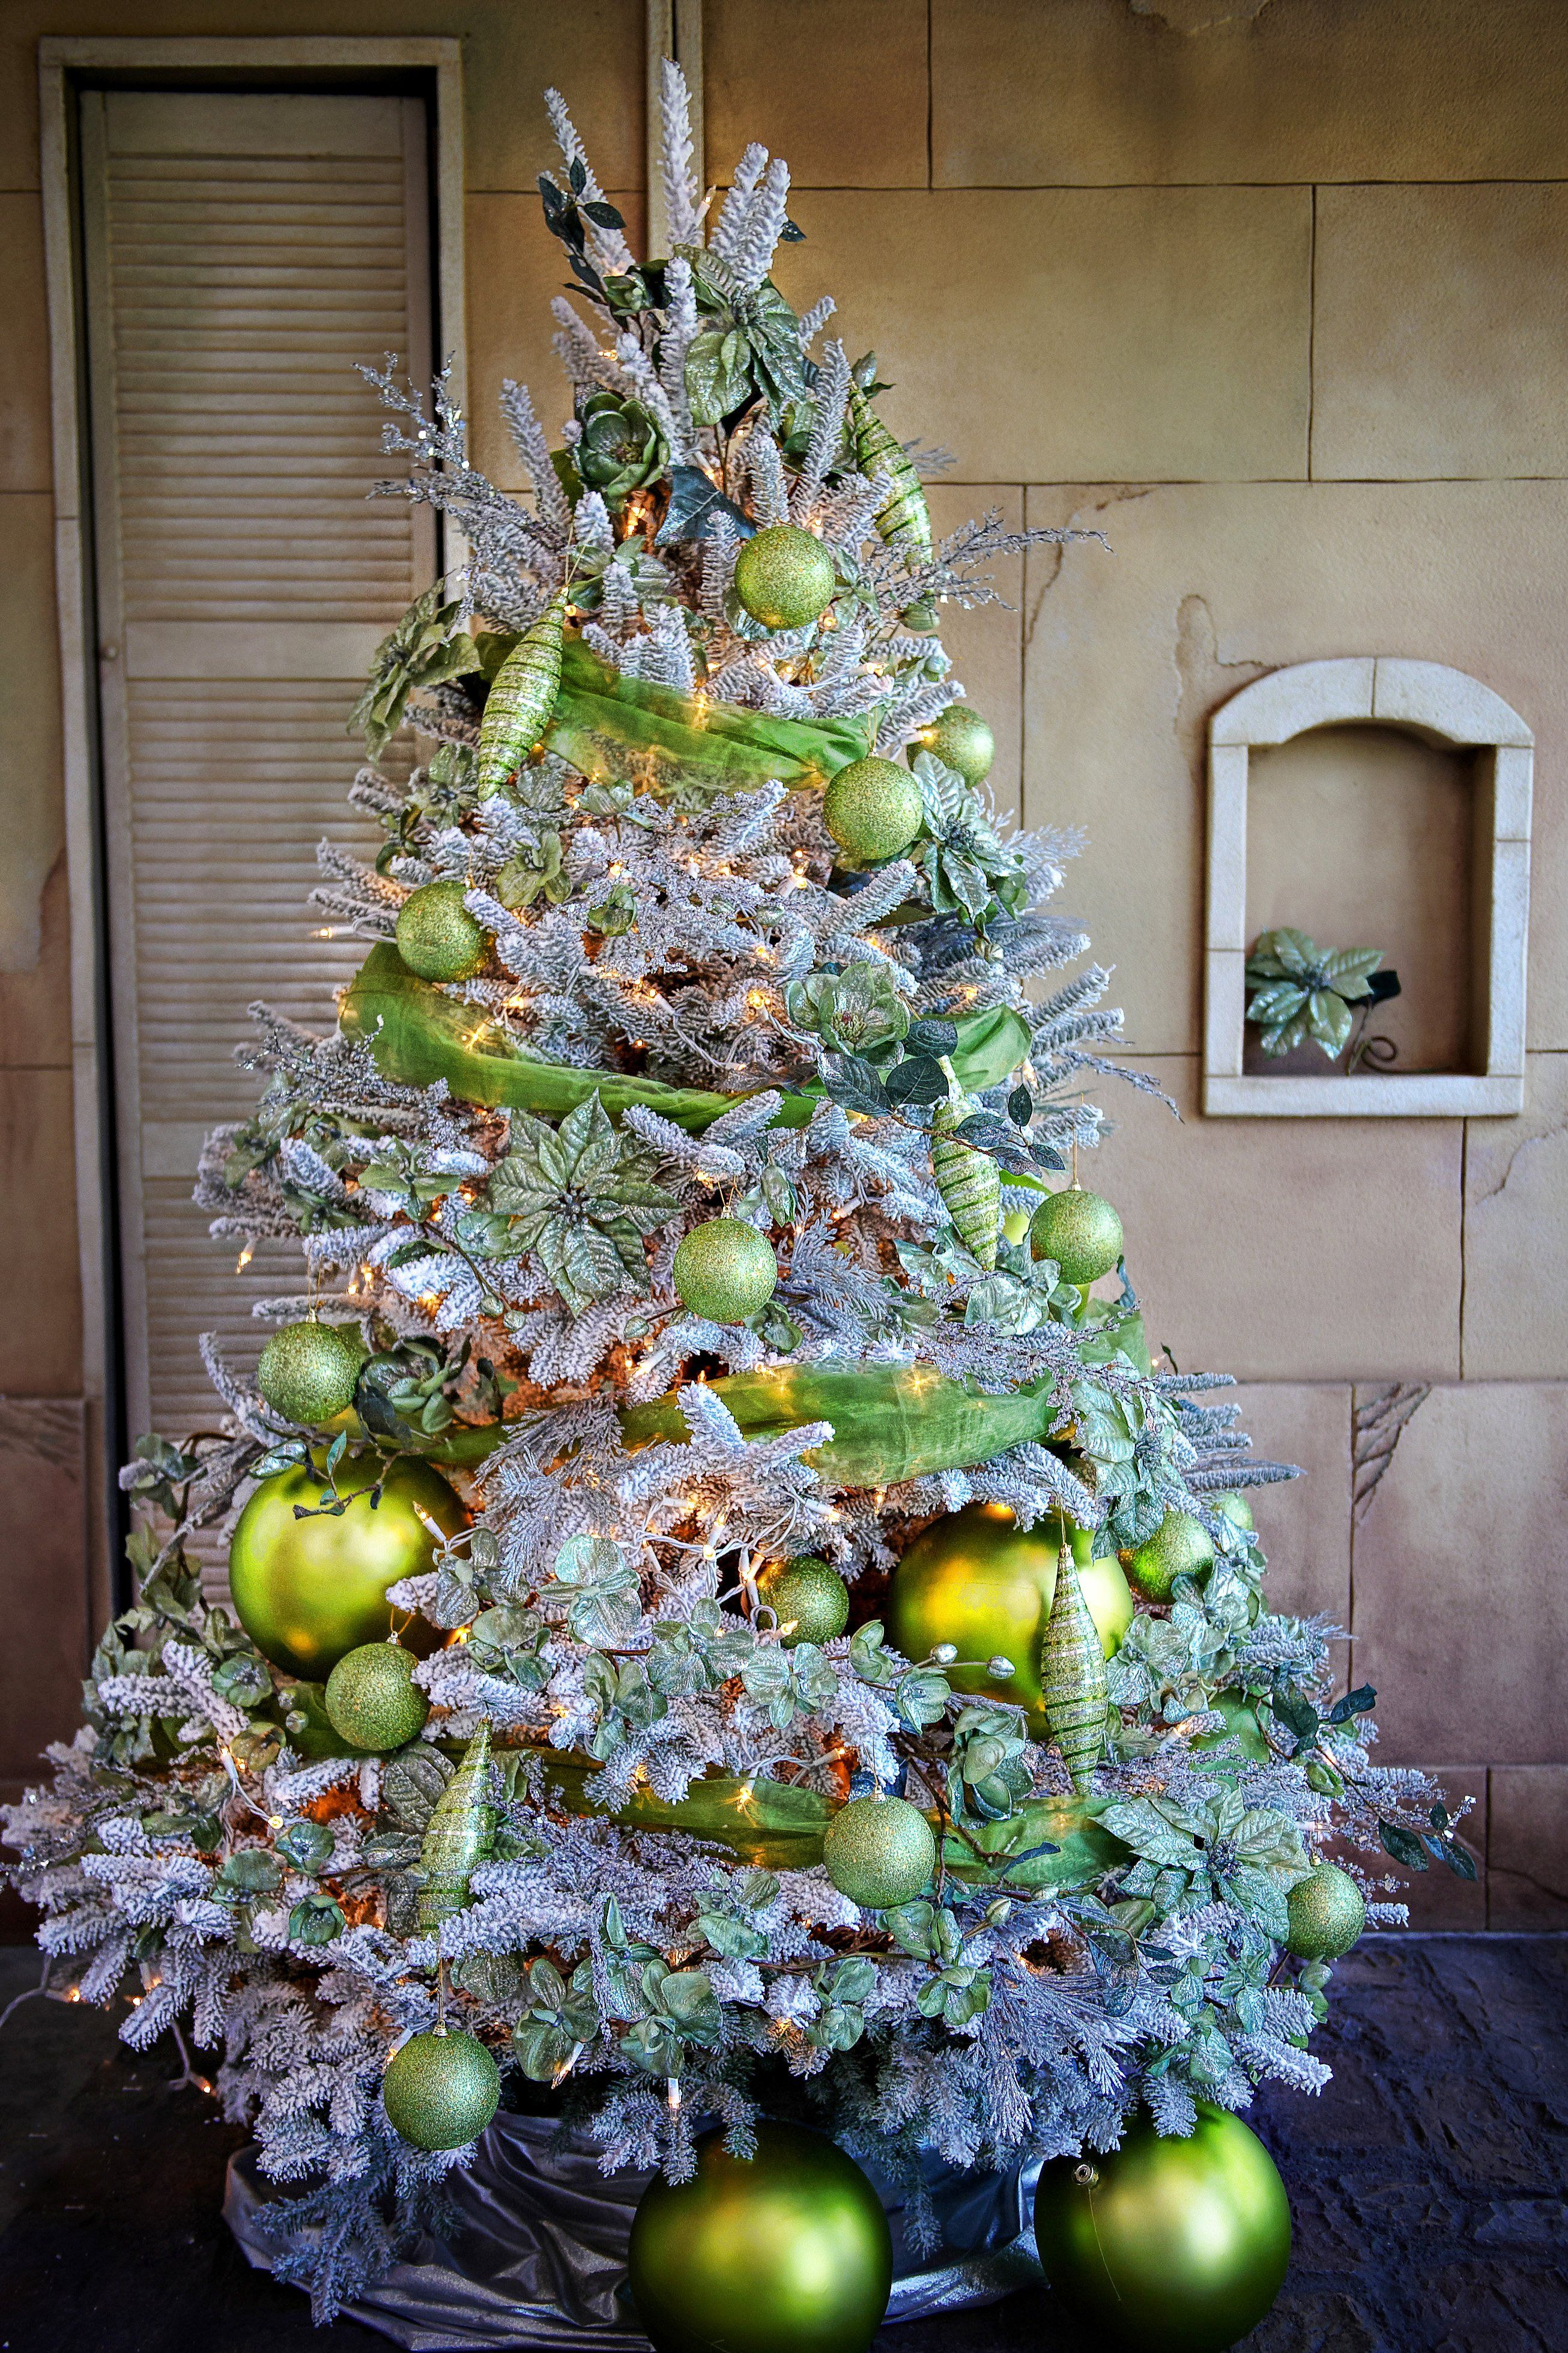 Flocked Tree With Lime Green Ornaments Most Wonderful Time Of The